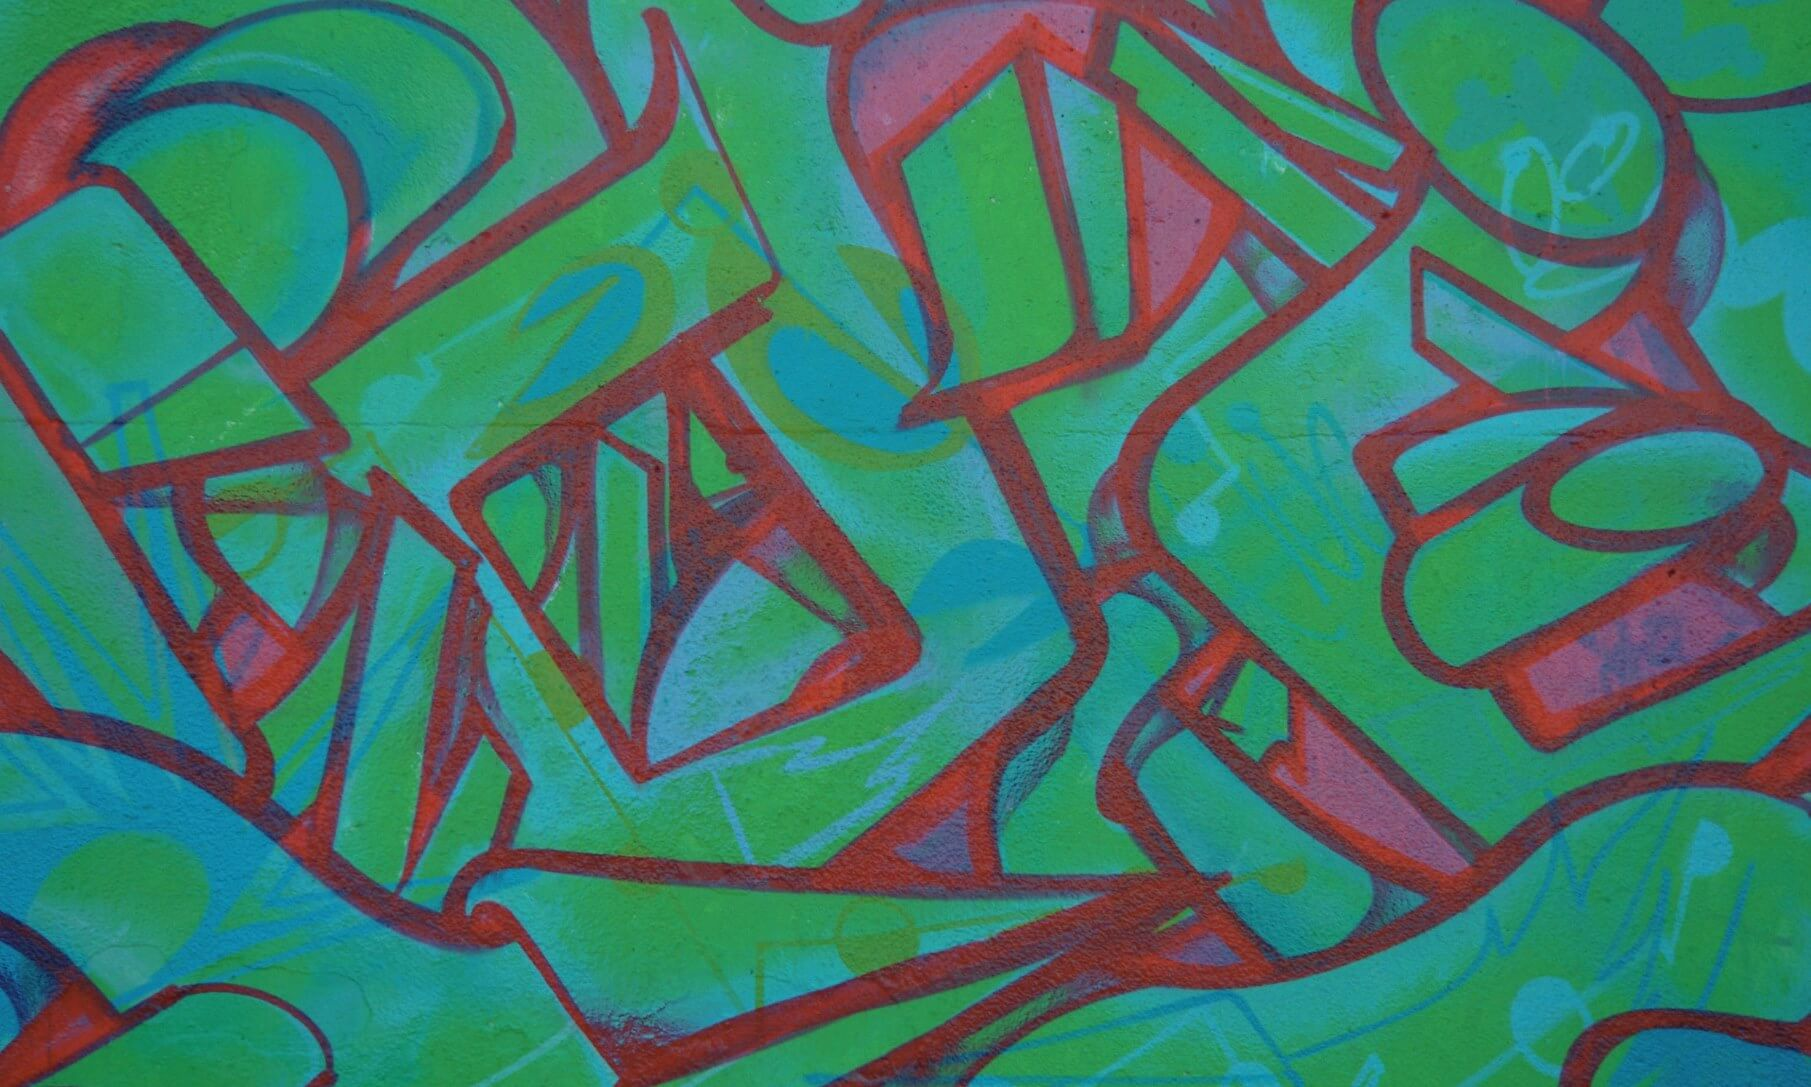 Graffiti Painting of Abstract Letter Shapes